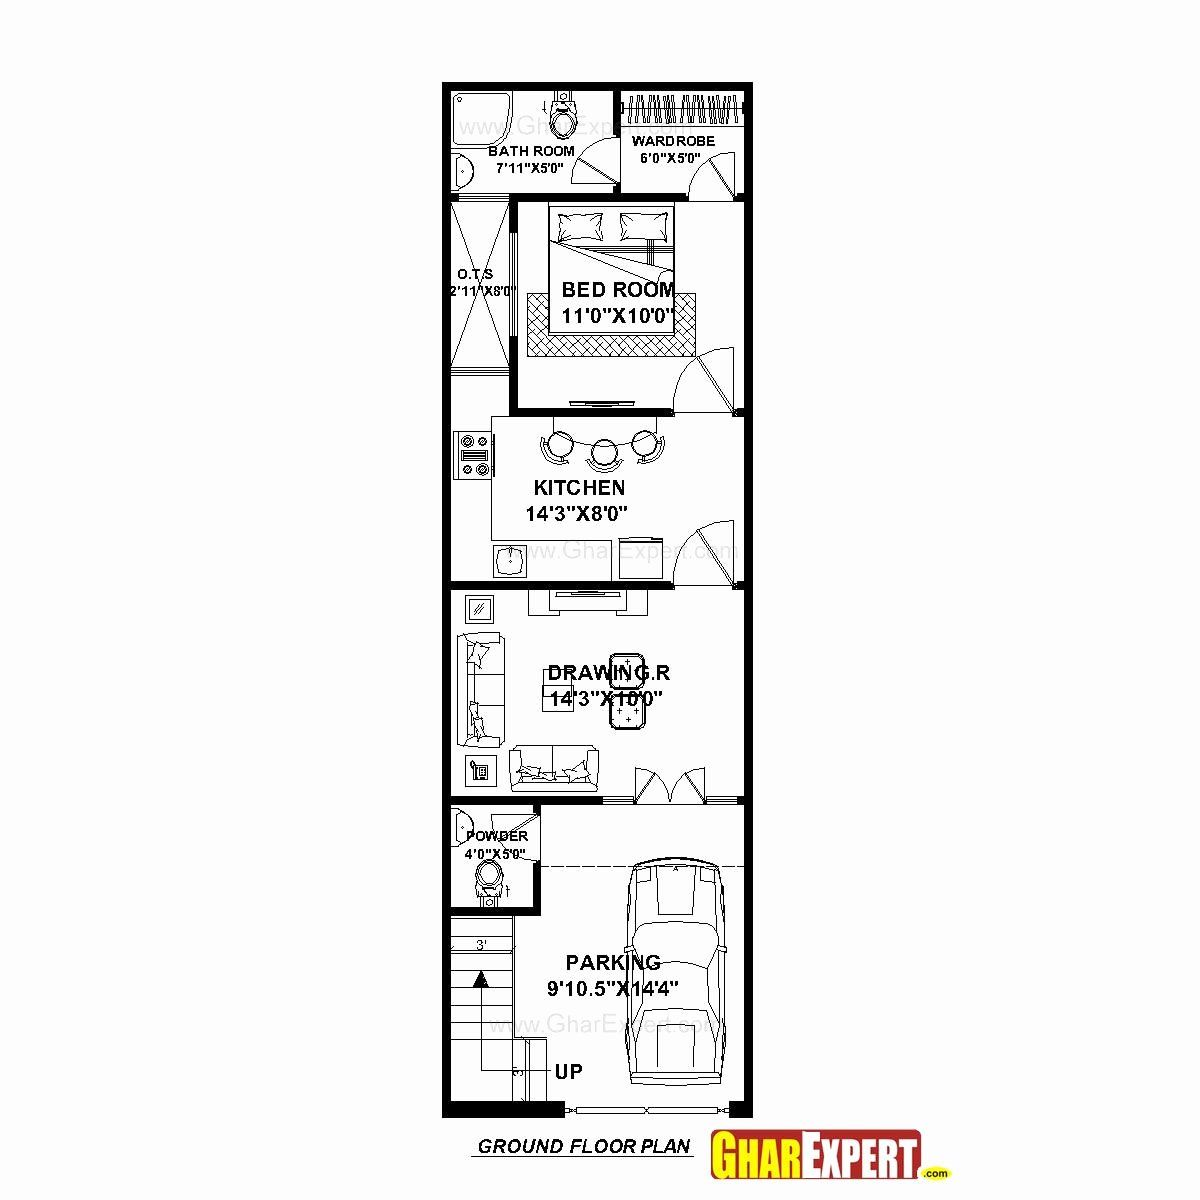 Building Planning And Drawing Book For Civil Engineering Pdf Best Of Pin On D In 2020 House Plans With Pictures Narrow House Plans Small Modern House Plans